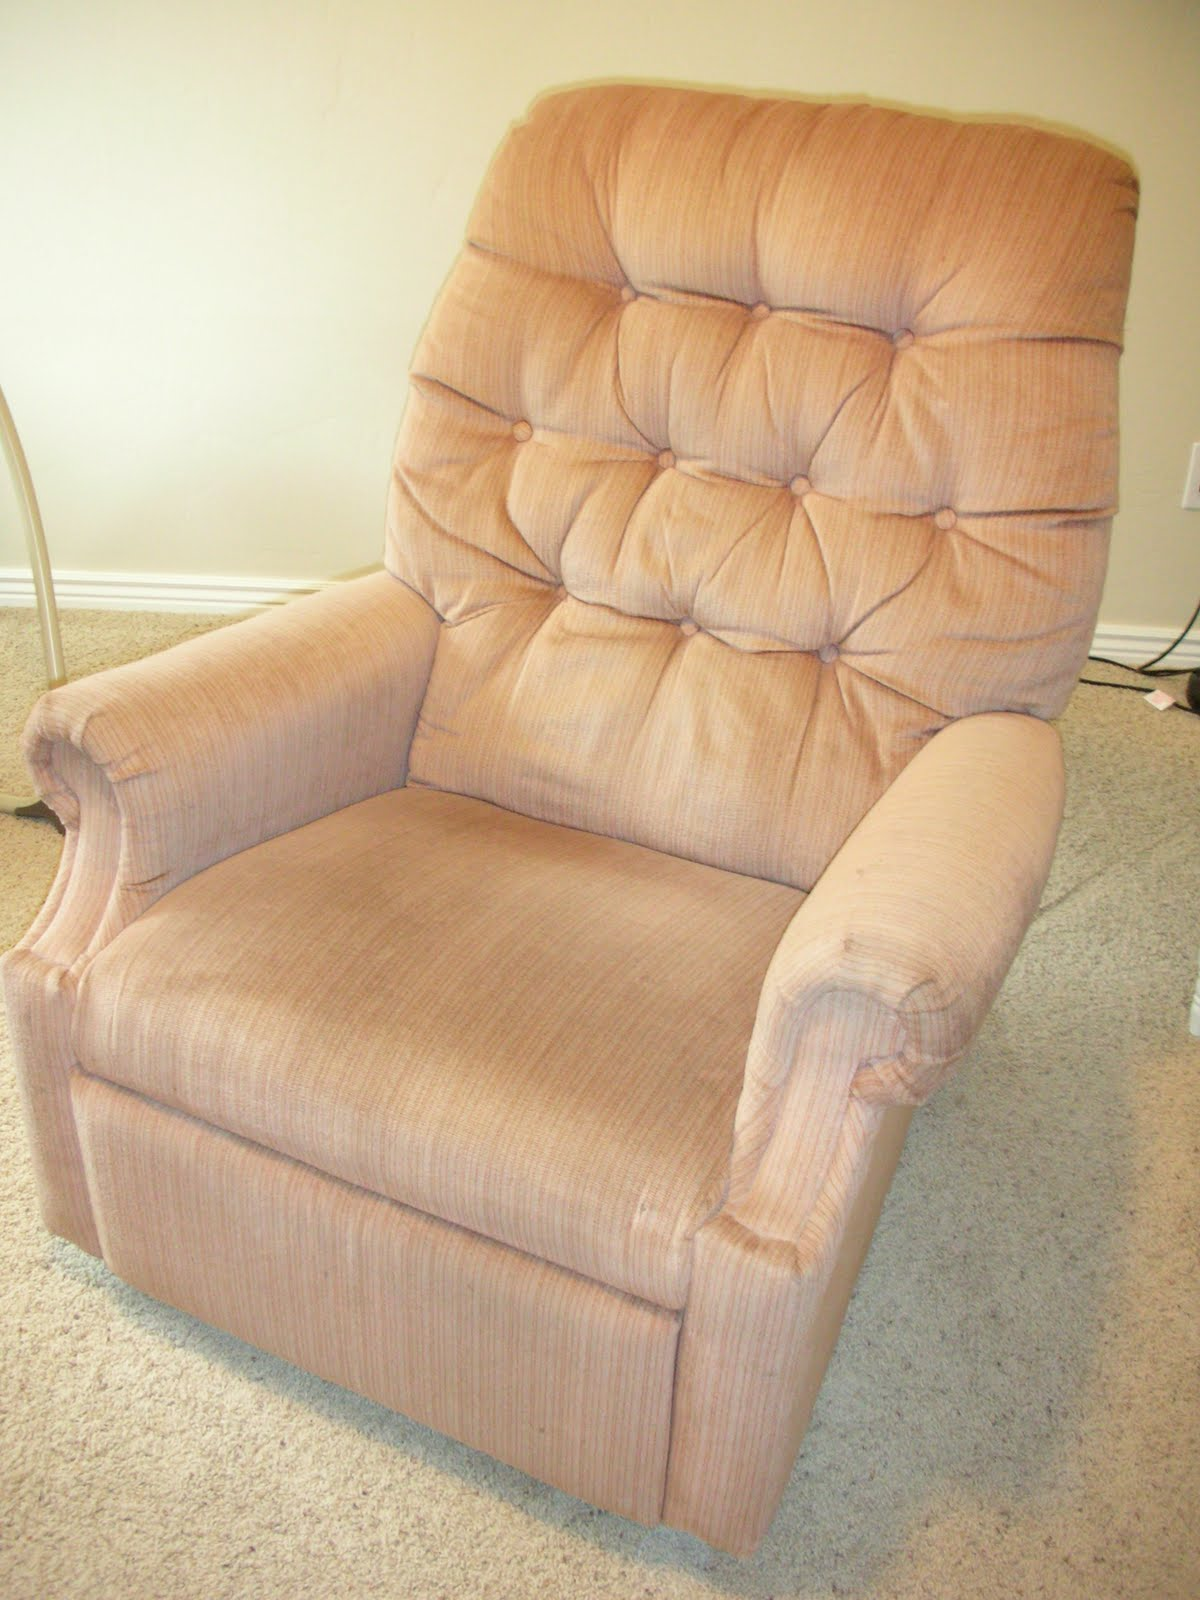 Reupholster Arm Chair No Sew